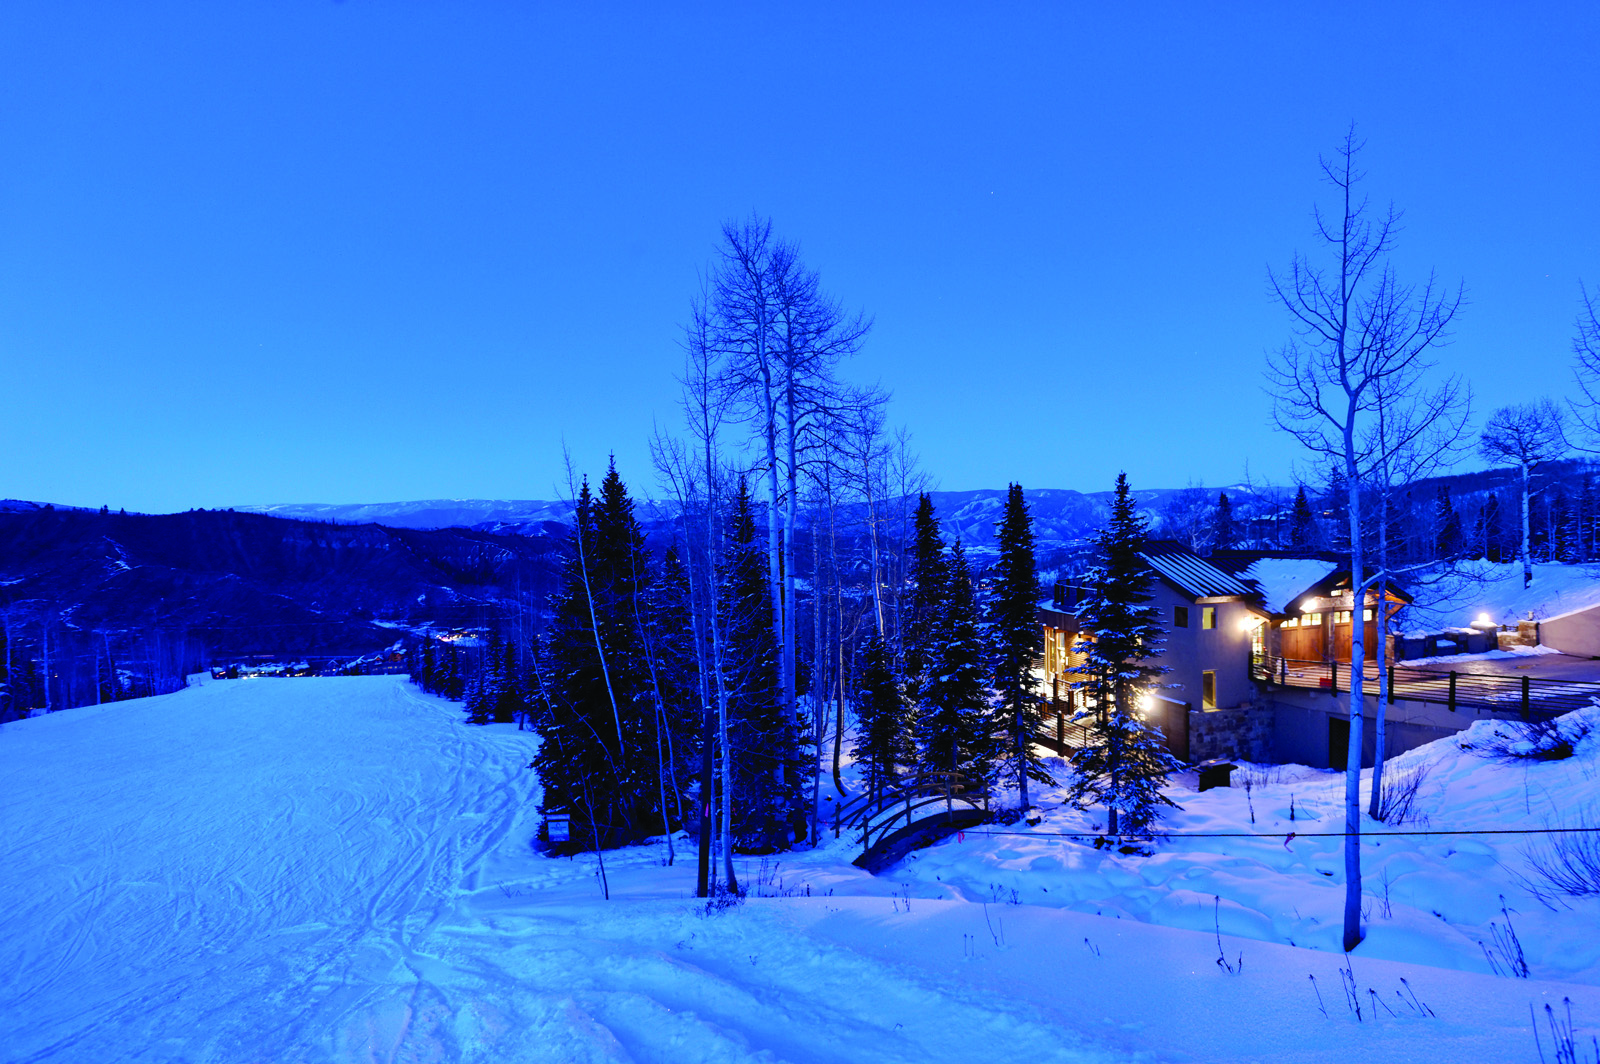 Single Family Home for Sale at The Ultimate Mountain Home 1457 Wood Rd, Snowmass Village, Colorado, 81615 United States